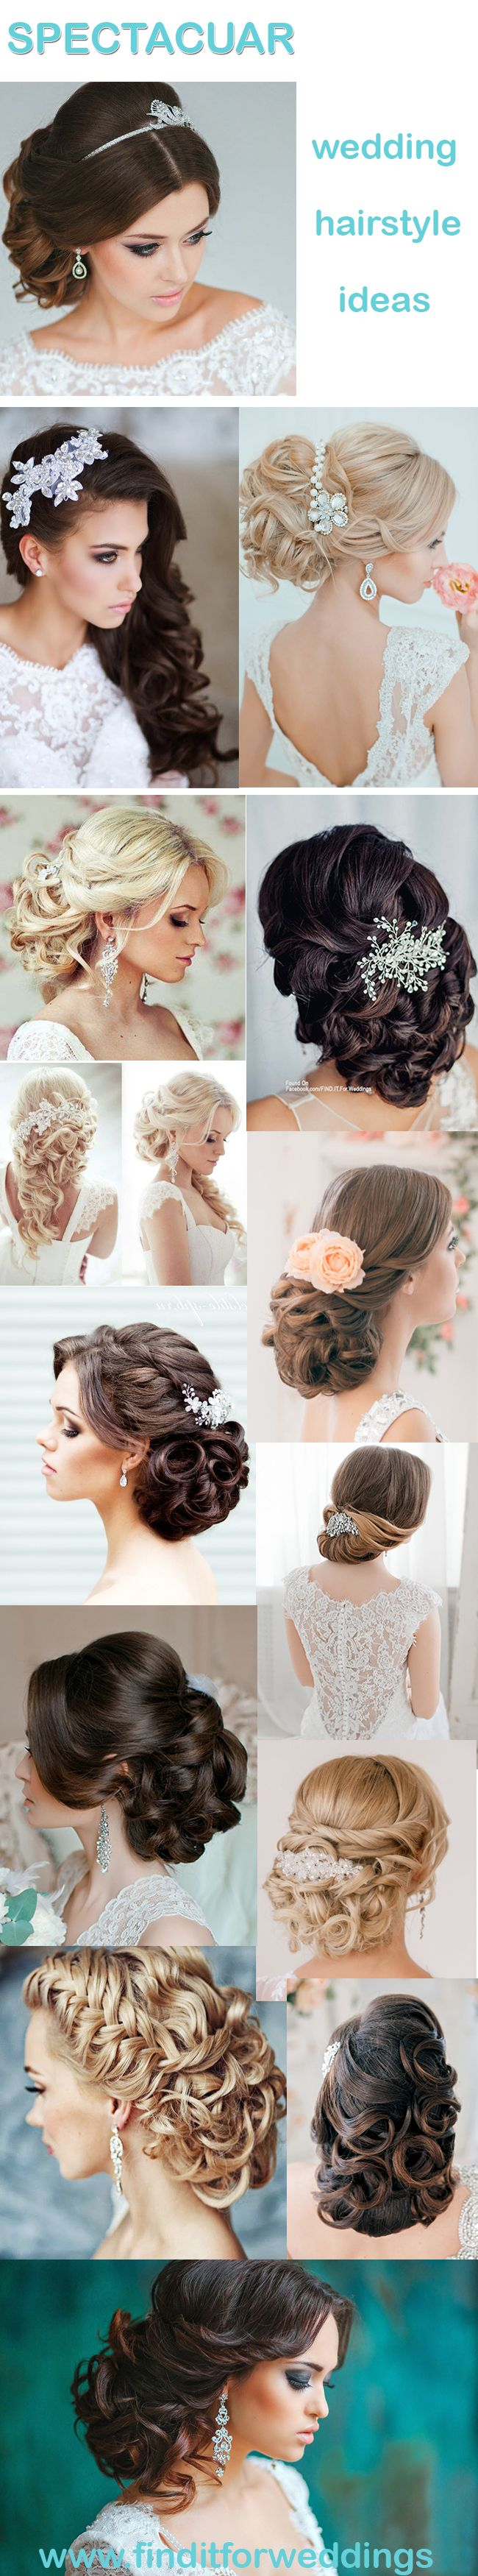 Popular wedding hairstyles that will make you feel like a Princess. For more fashion and wedding inspiration visit www.finditforweddings.com Wedding updos